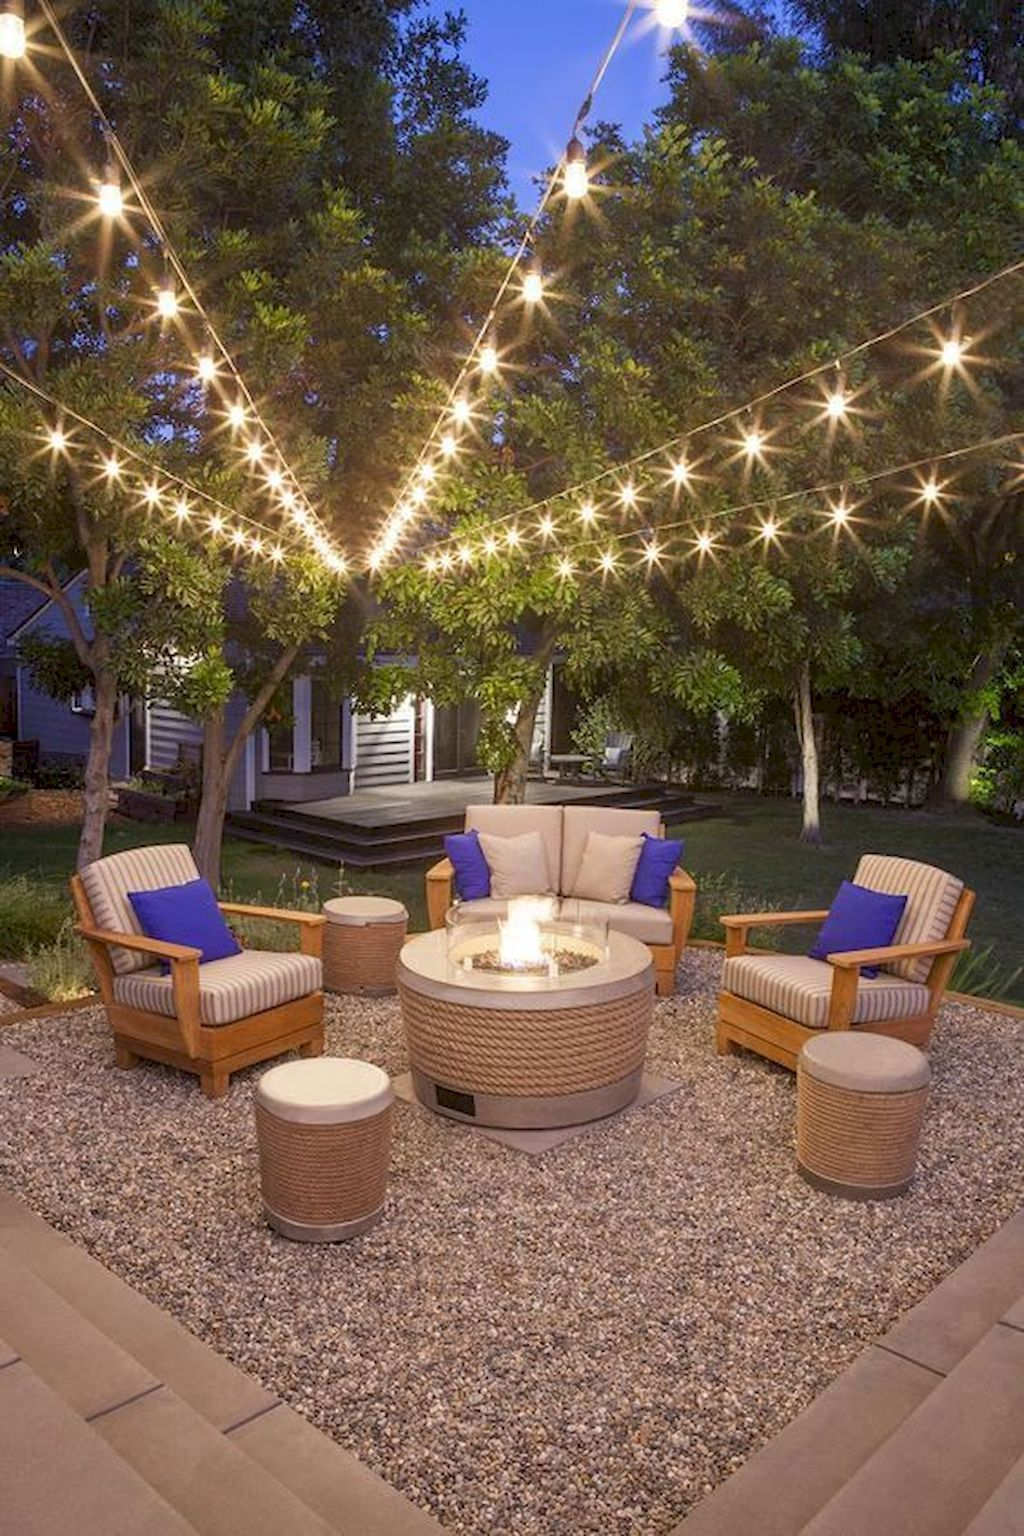 02 Summery DIY Backyard Projects Ideas to Mesmerizing Your Summer is part of Fire pit backyard, Backyard fire, Diy backyard, Backyard lighting, Backyard diy projects, Backyard - 02 Summery DIY Backyard Projects Ideas to Mesmerizing Your Summer